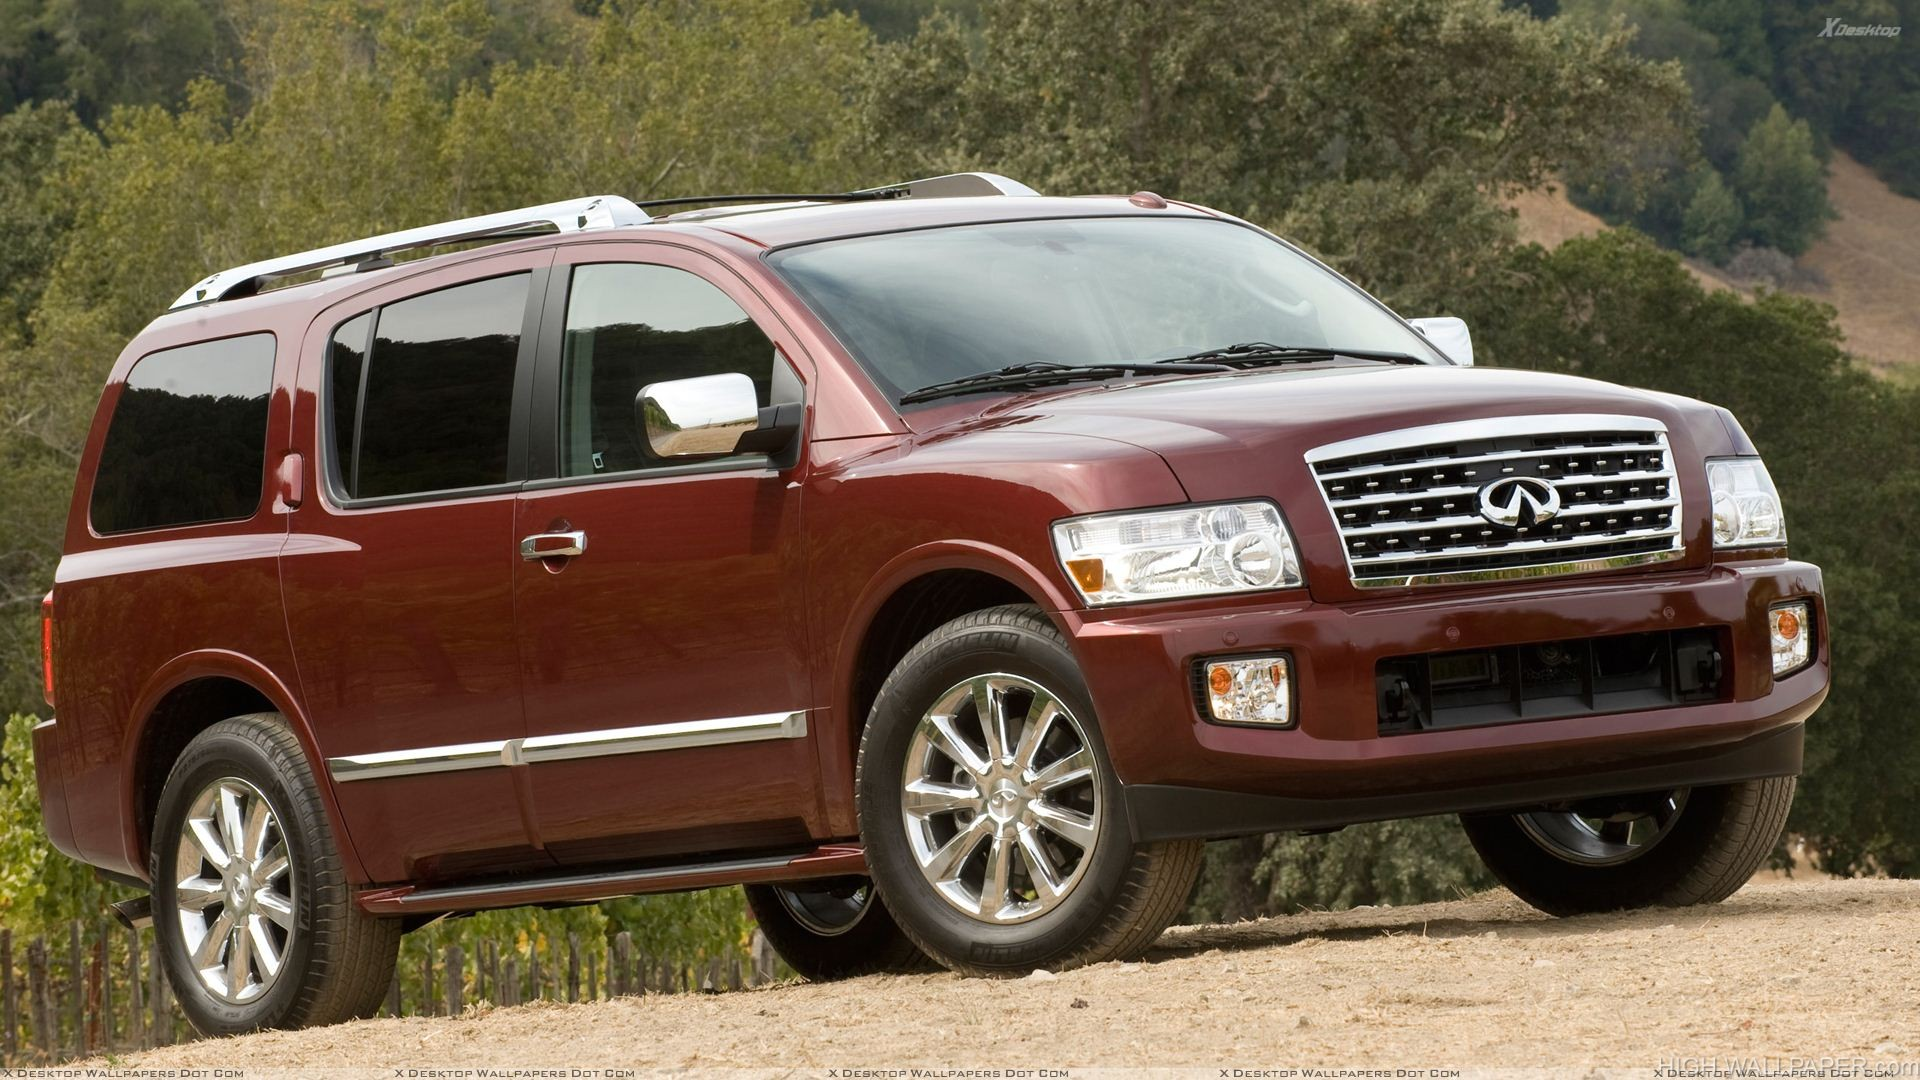 Infiniti QX56 2009 In Brown Front Pose